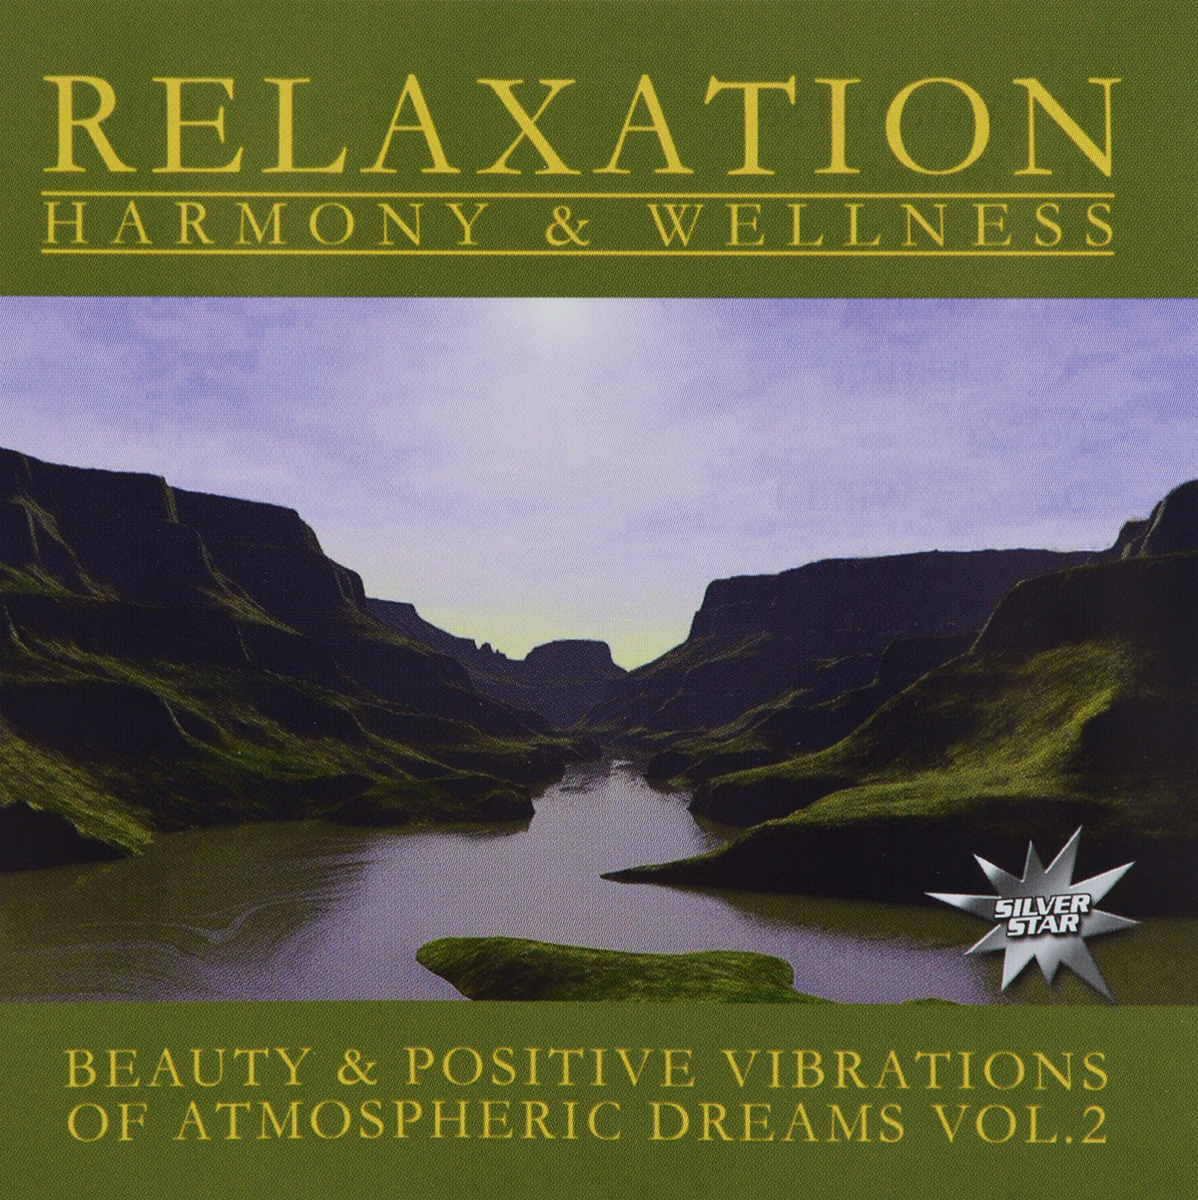 Beauty & Positive Vibrations Of Atmospheric Dreams. Vol. 2